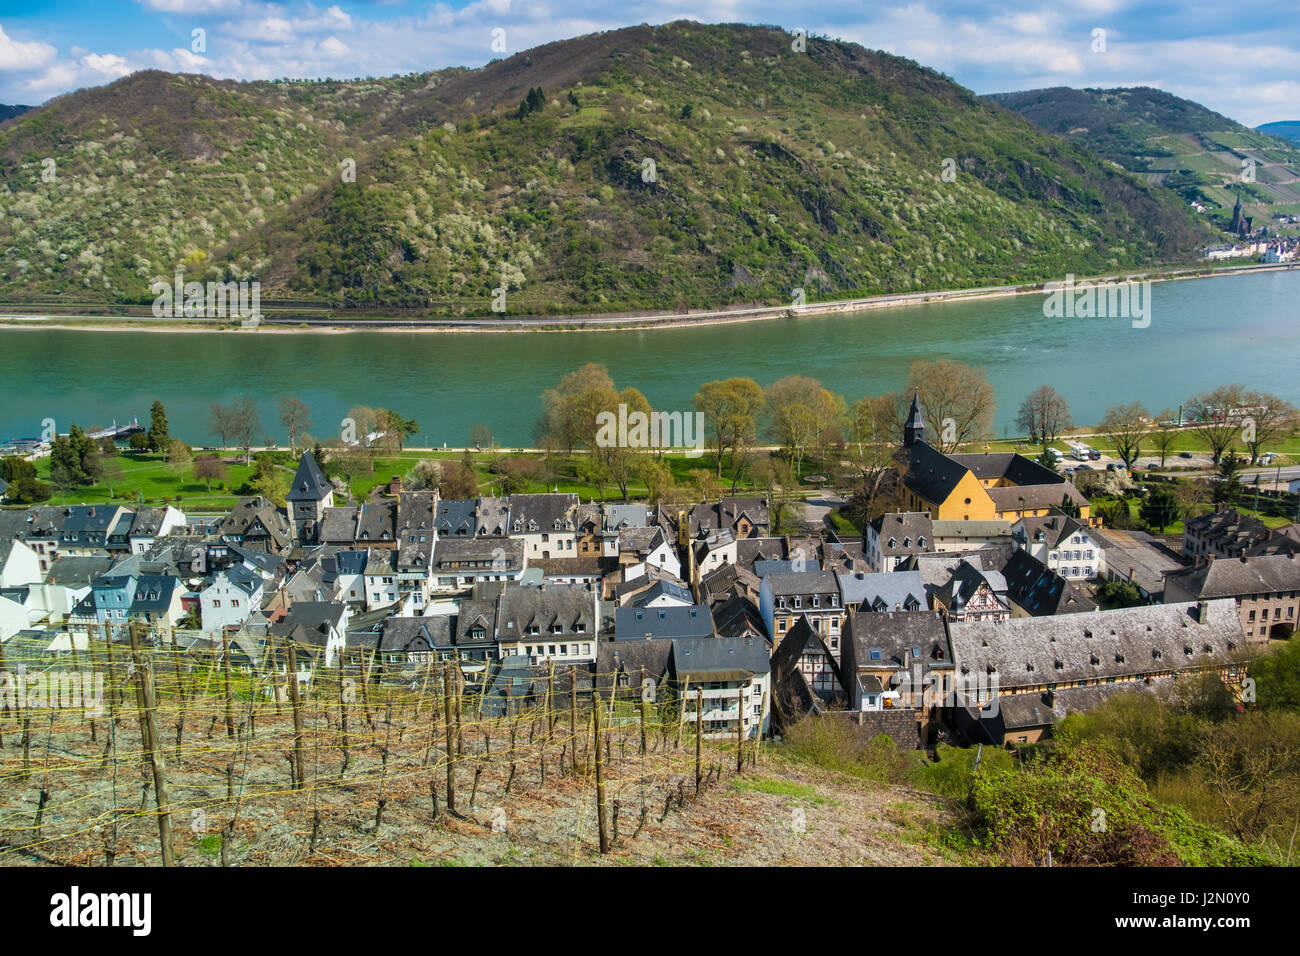 bacharach am rhein in the mainz bingen district in stock photo royalty free image 139374004. Black Bedroom Furniture Sets. Home Design Ideas